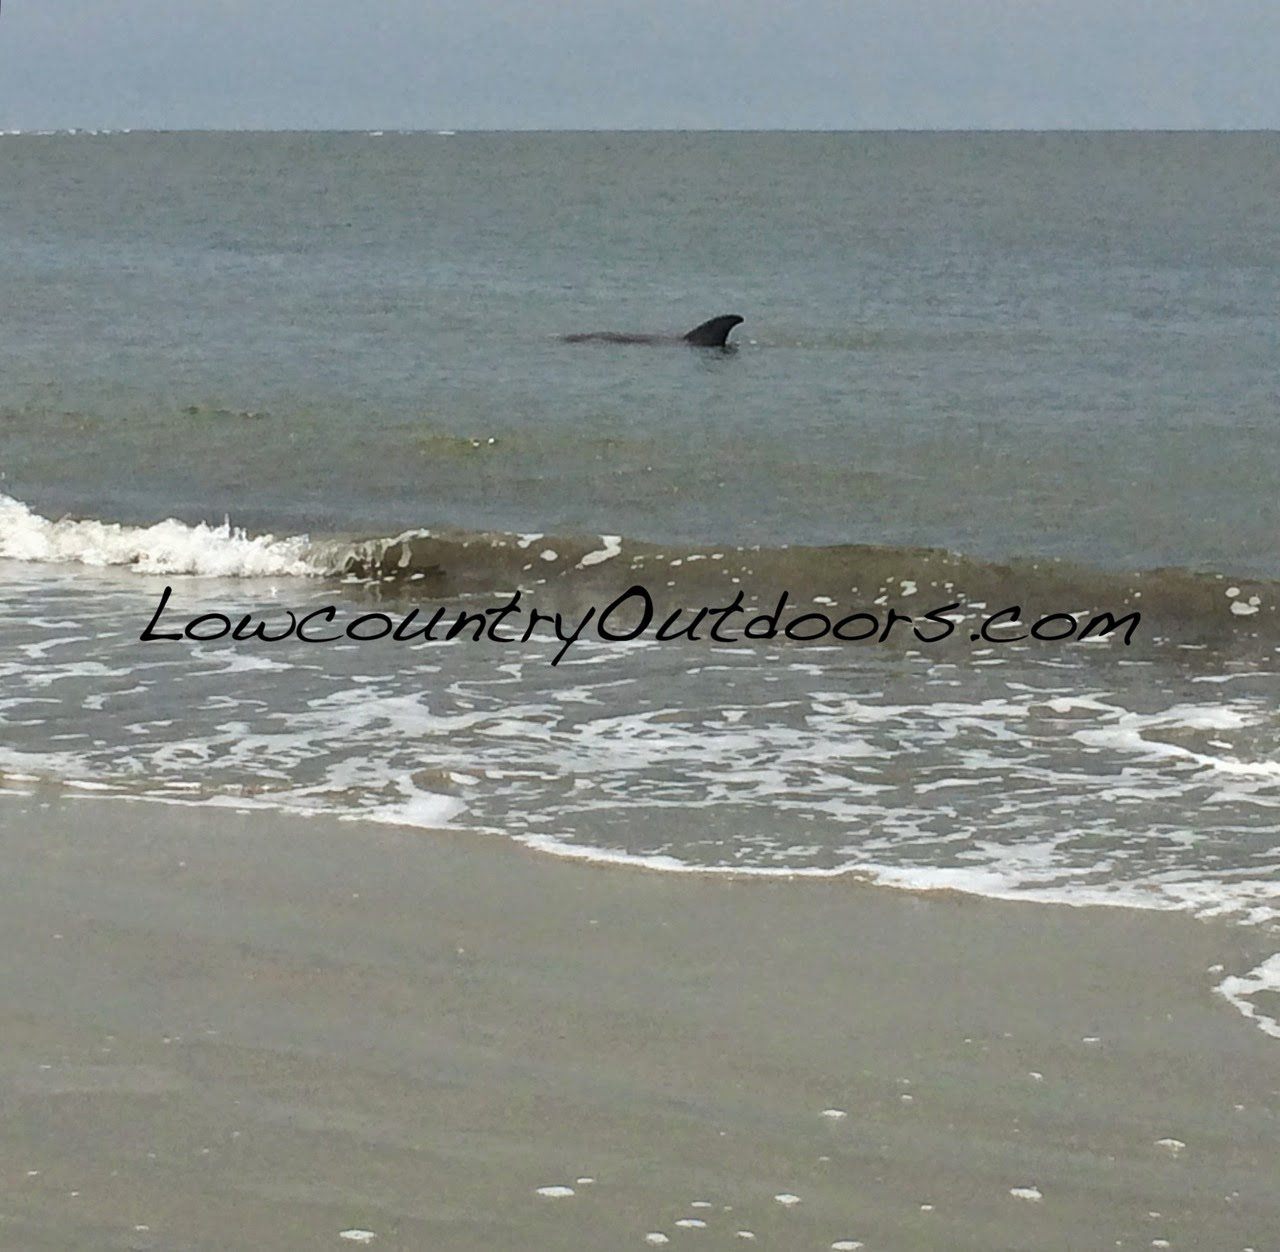 Lowcountry outdoors exploring edisto island dolphin strand feeding dolphin in shallow water looking for a meal nvjuhfo Gallery